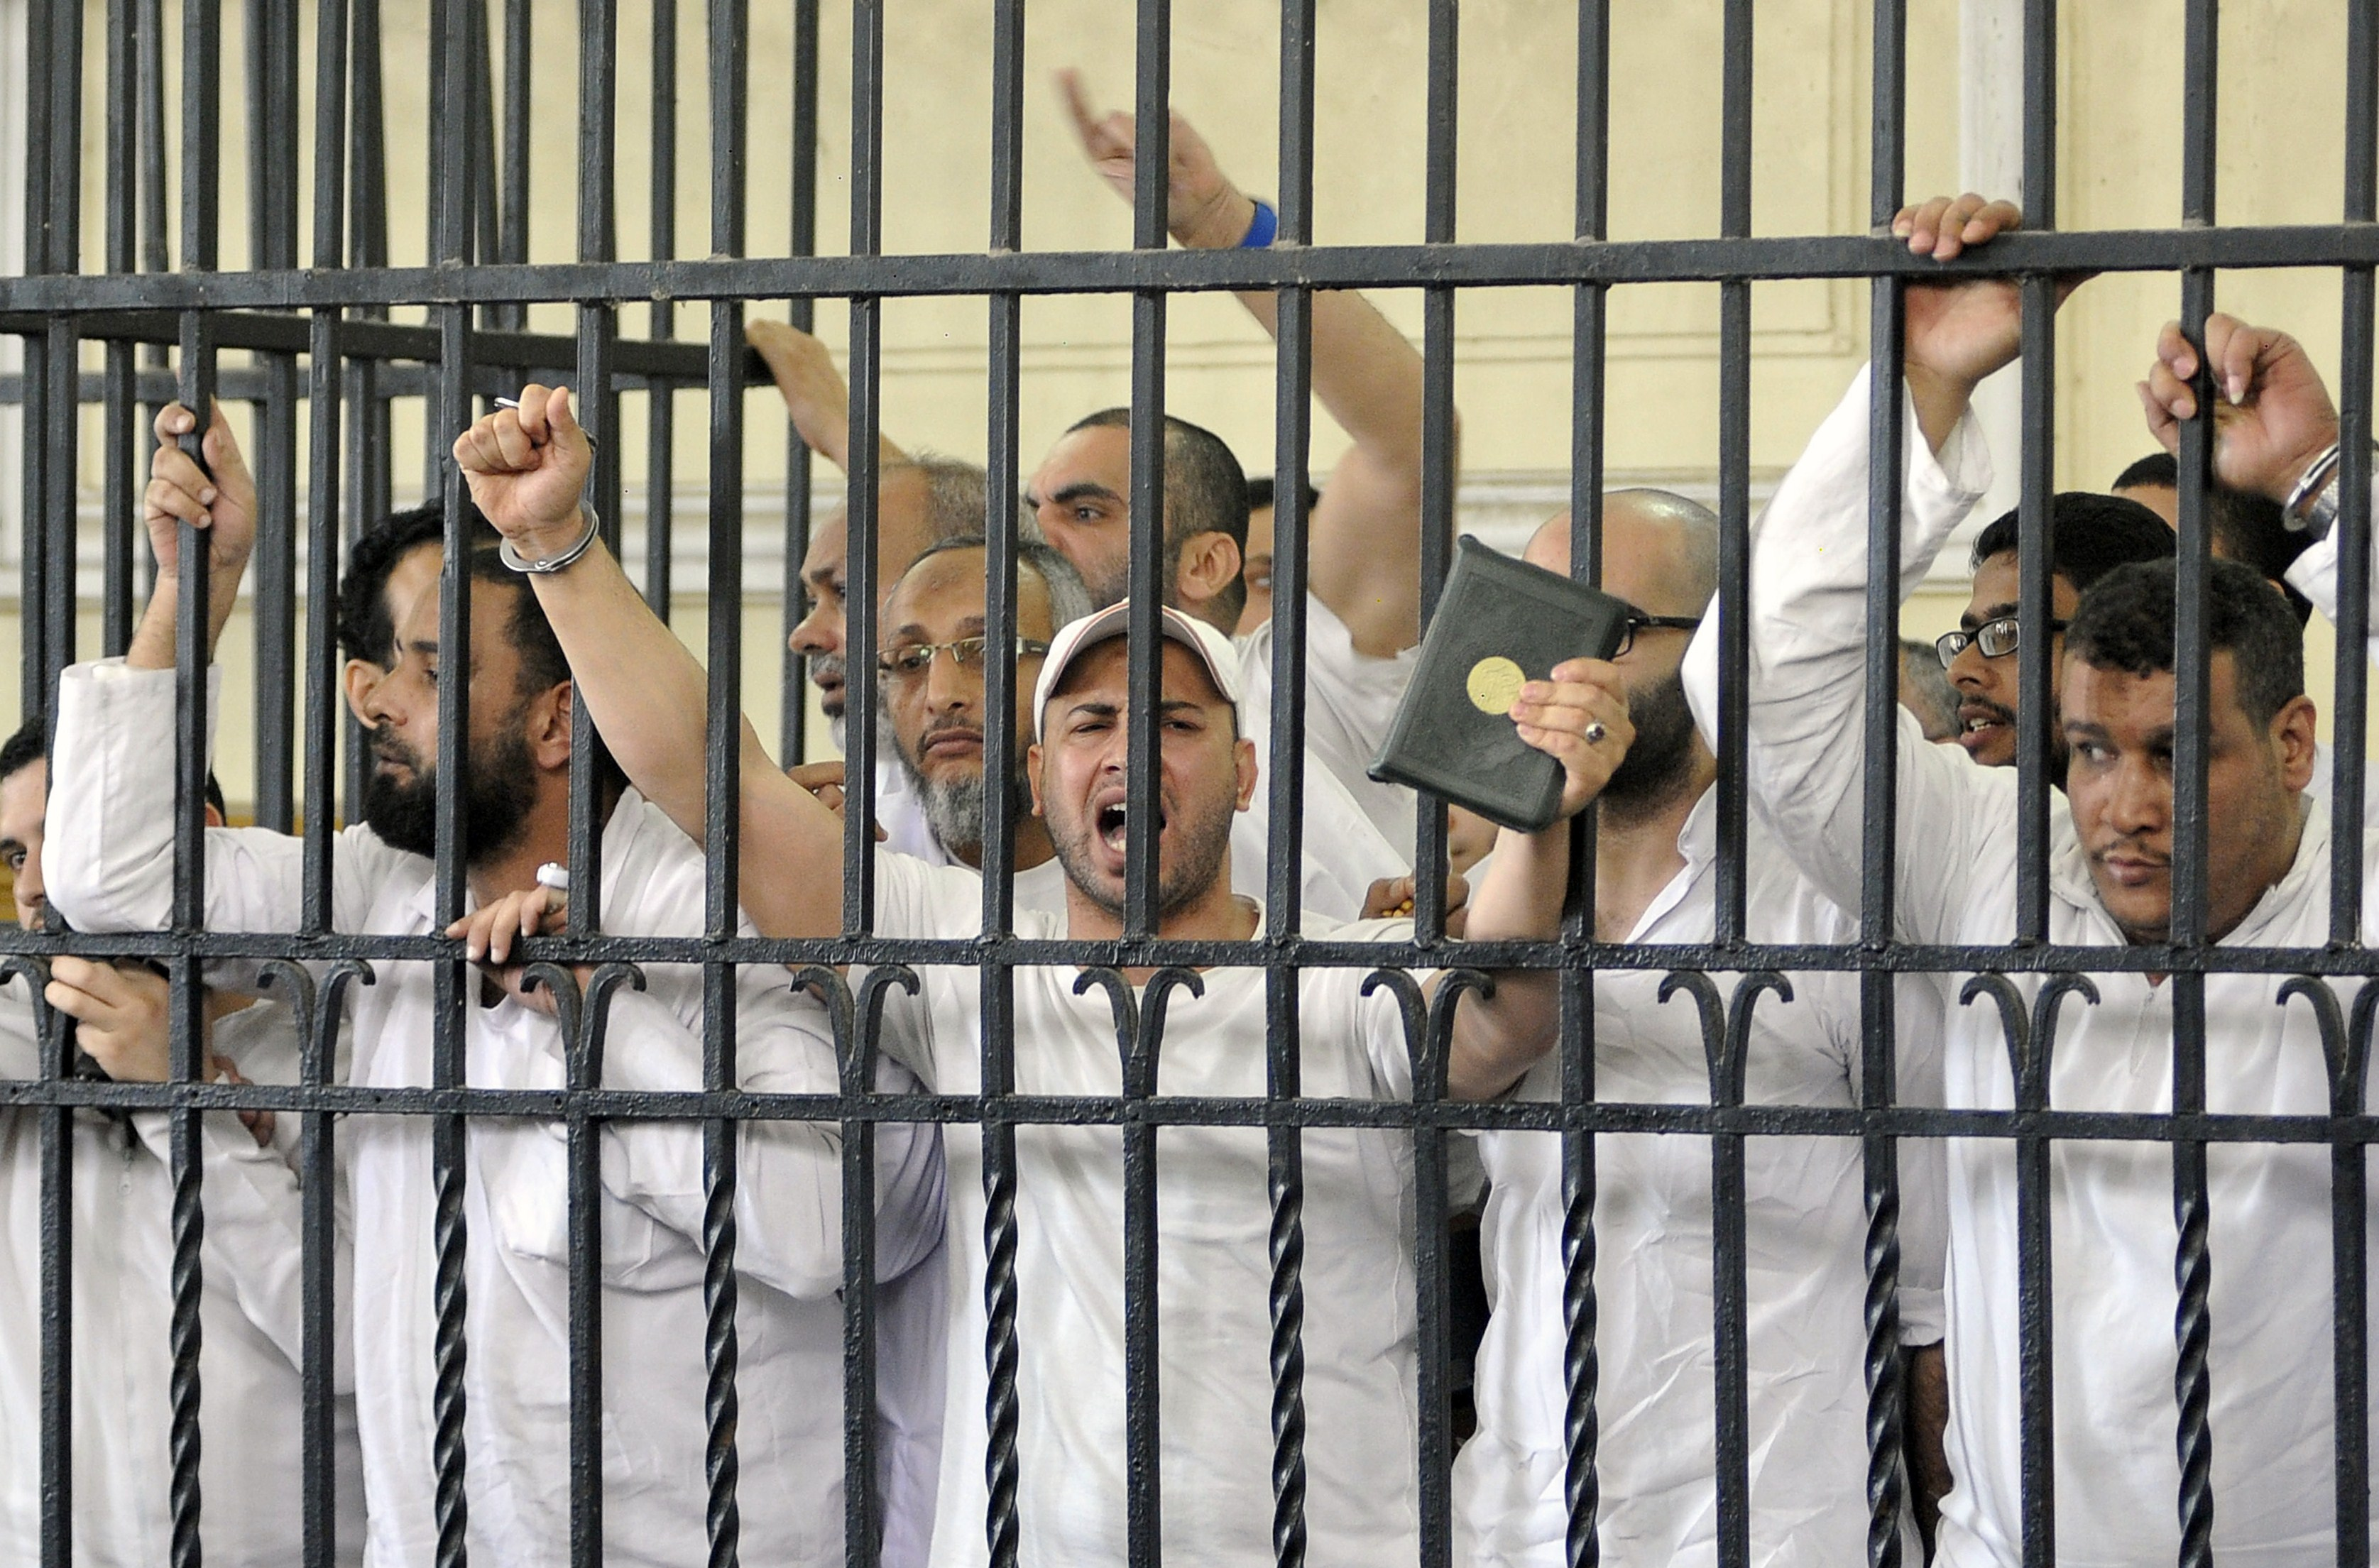 Egyptians react from behind the defendants cage on May 19, 2014 during their trial over deadly violence in the Sidi Gaber neighbourhood of the northern port city of Alexandria on July 5 last year, two days after the army overthrew Egypt's ousted Islamist president Mohamed Morsi. Earlier in the year a court sentenced to death two men for throwing youths off an apartment block roof, one of whom died, during the violence that broke out when supporters and opponents of Morsi took to the streets of Egypt's second city, with one group demanding his reinstatement and the other celebrating the end of his sole year in power.  (AFP PHOTO / STR)